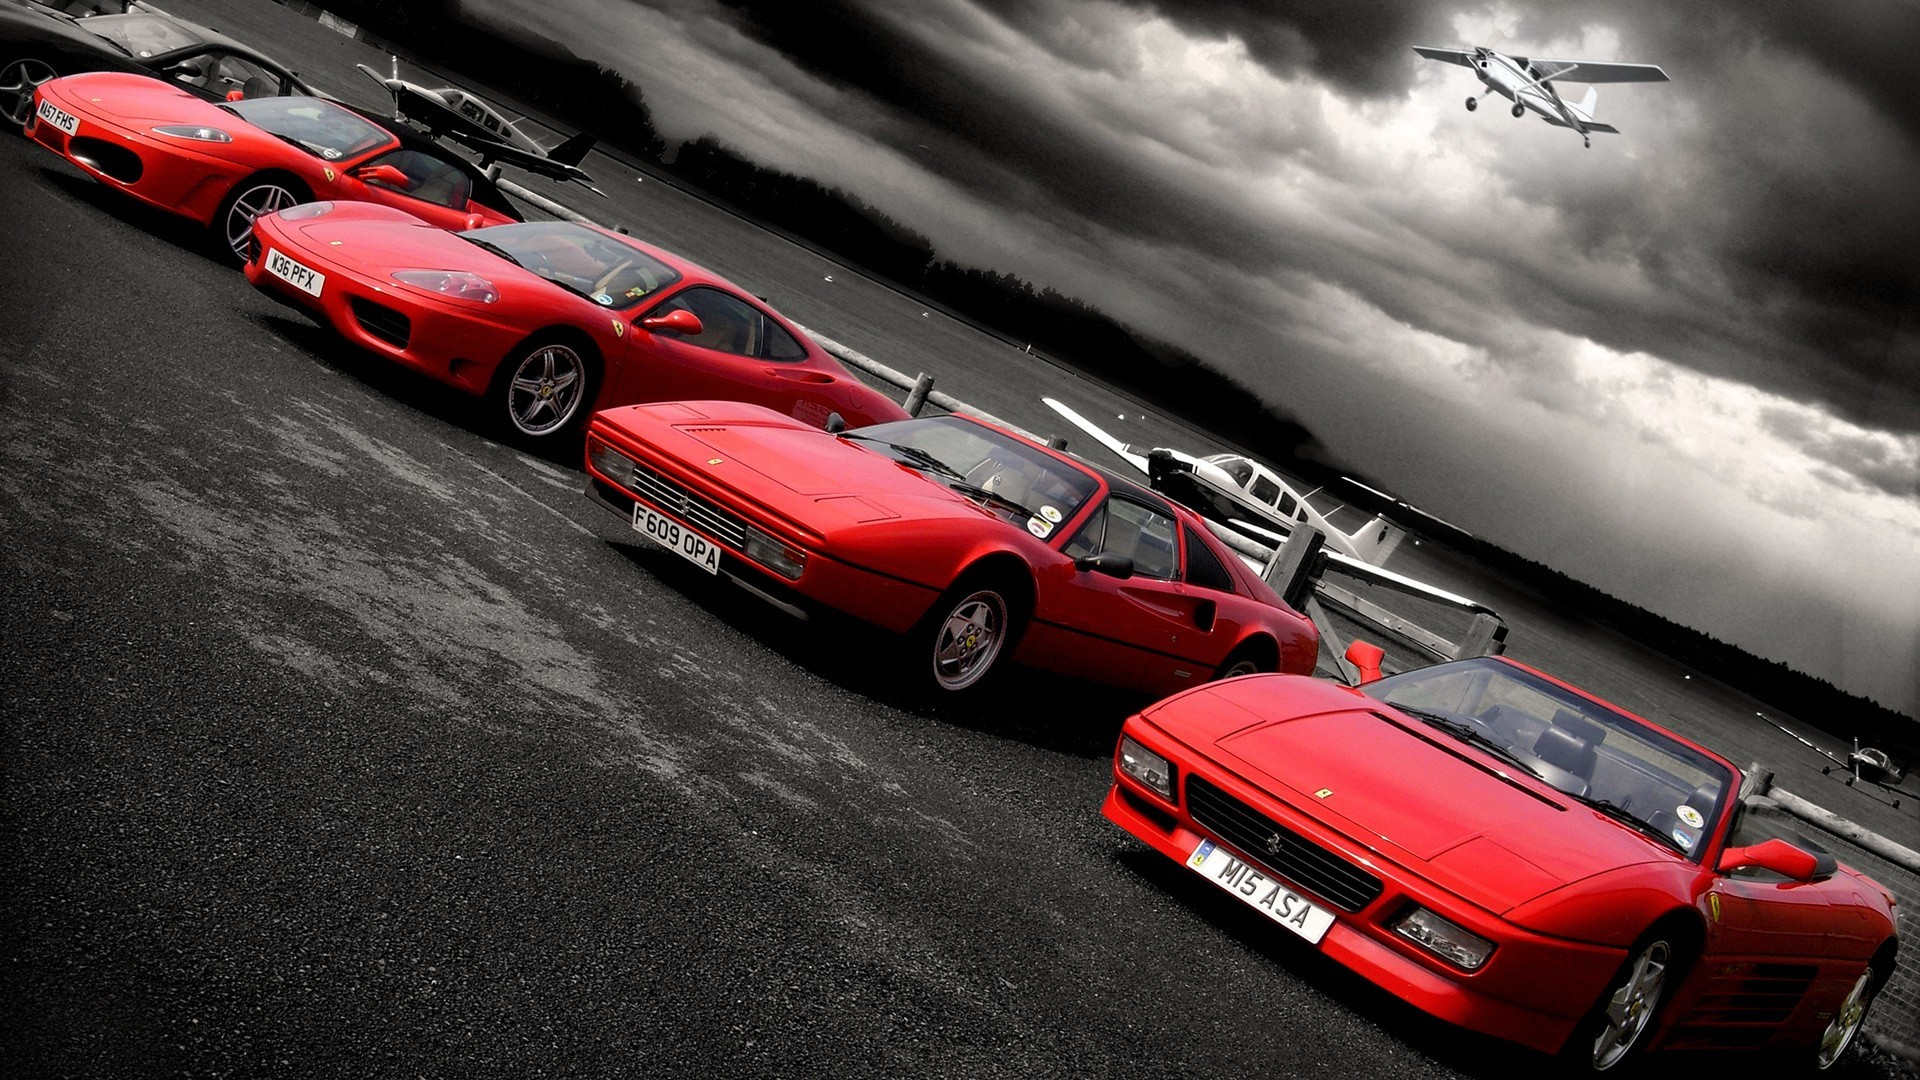 cars Ferrari selective coloring HD Wallpaper